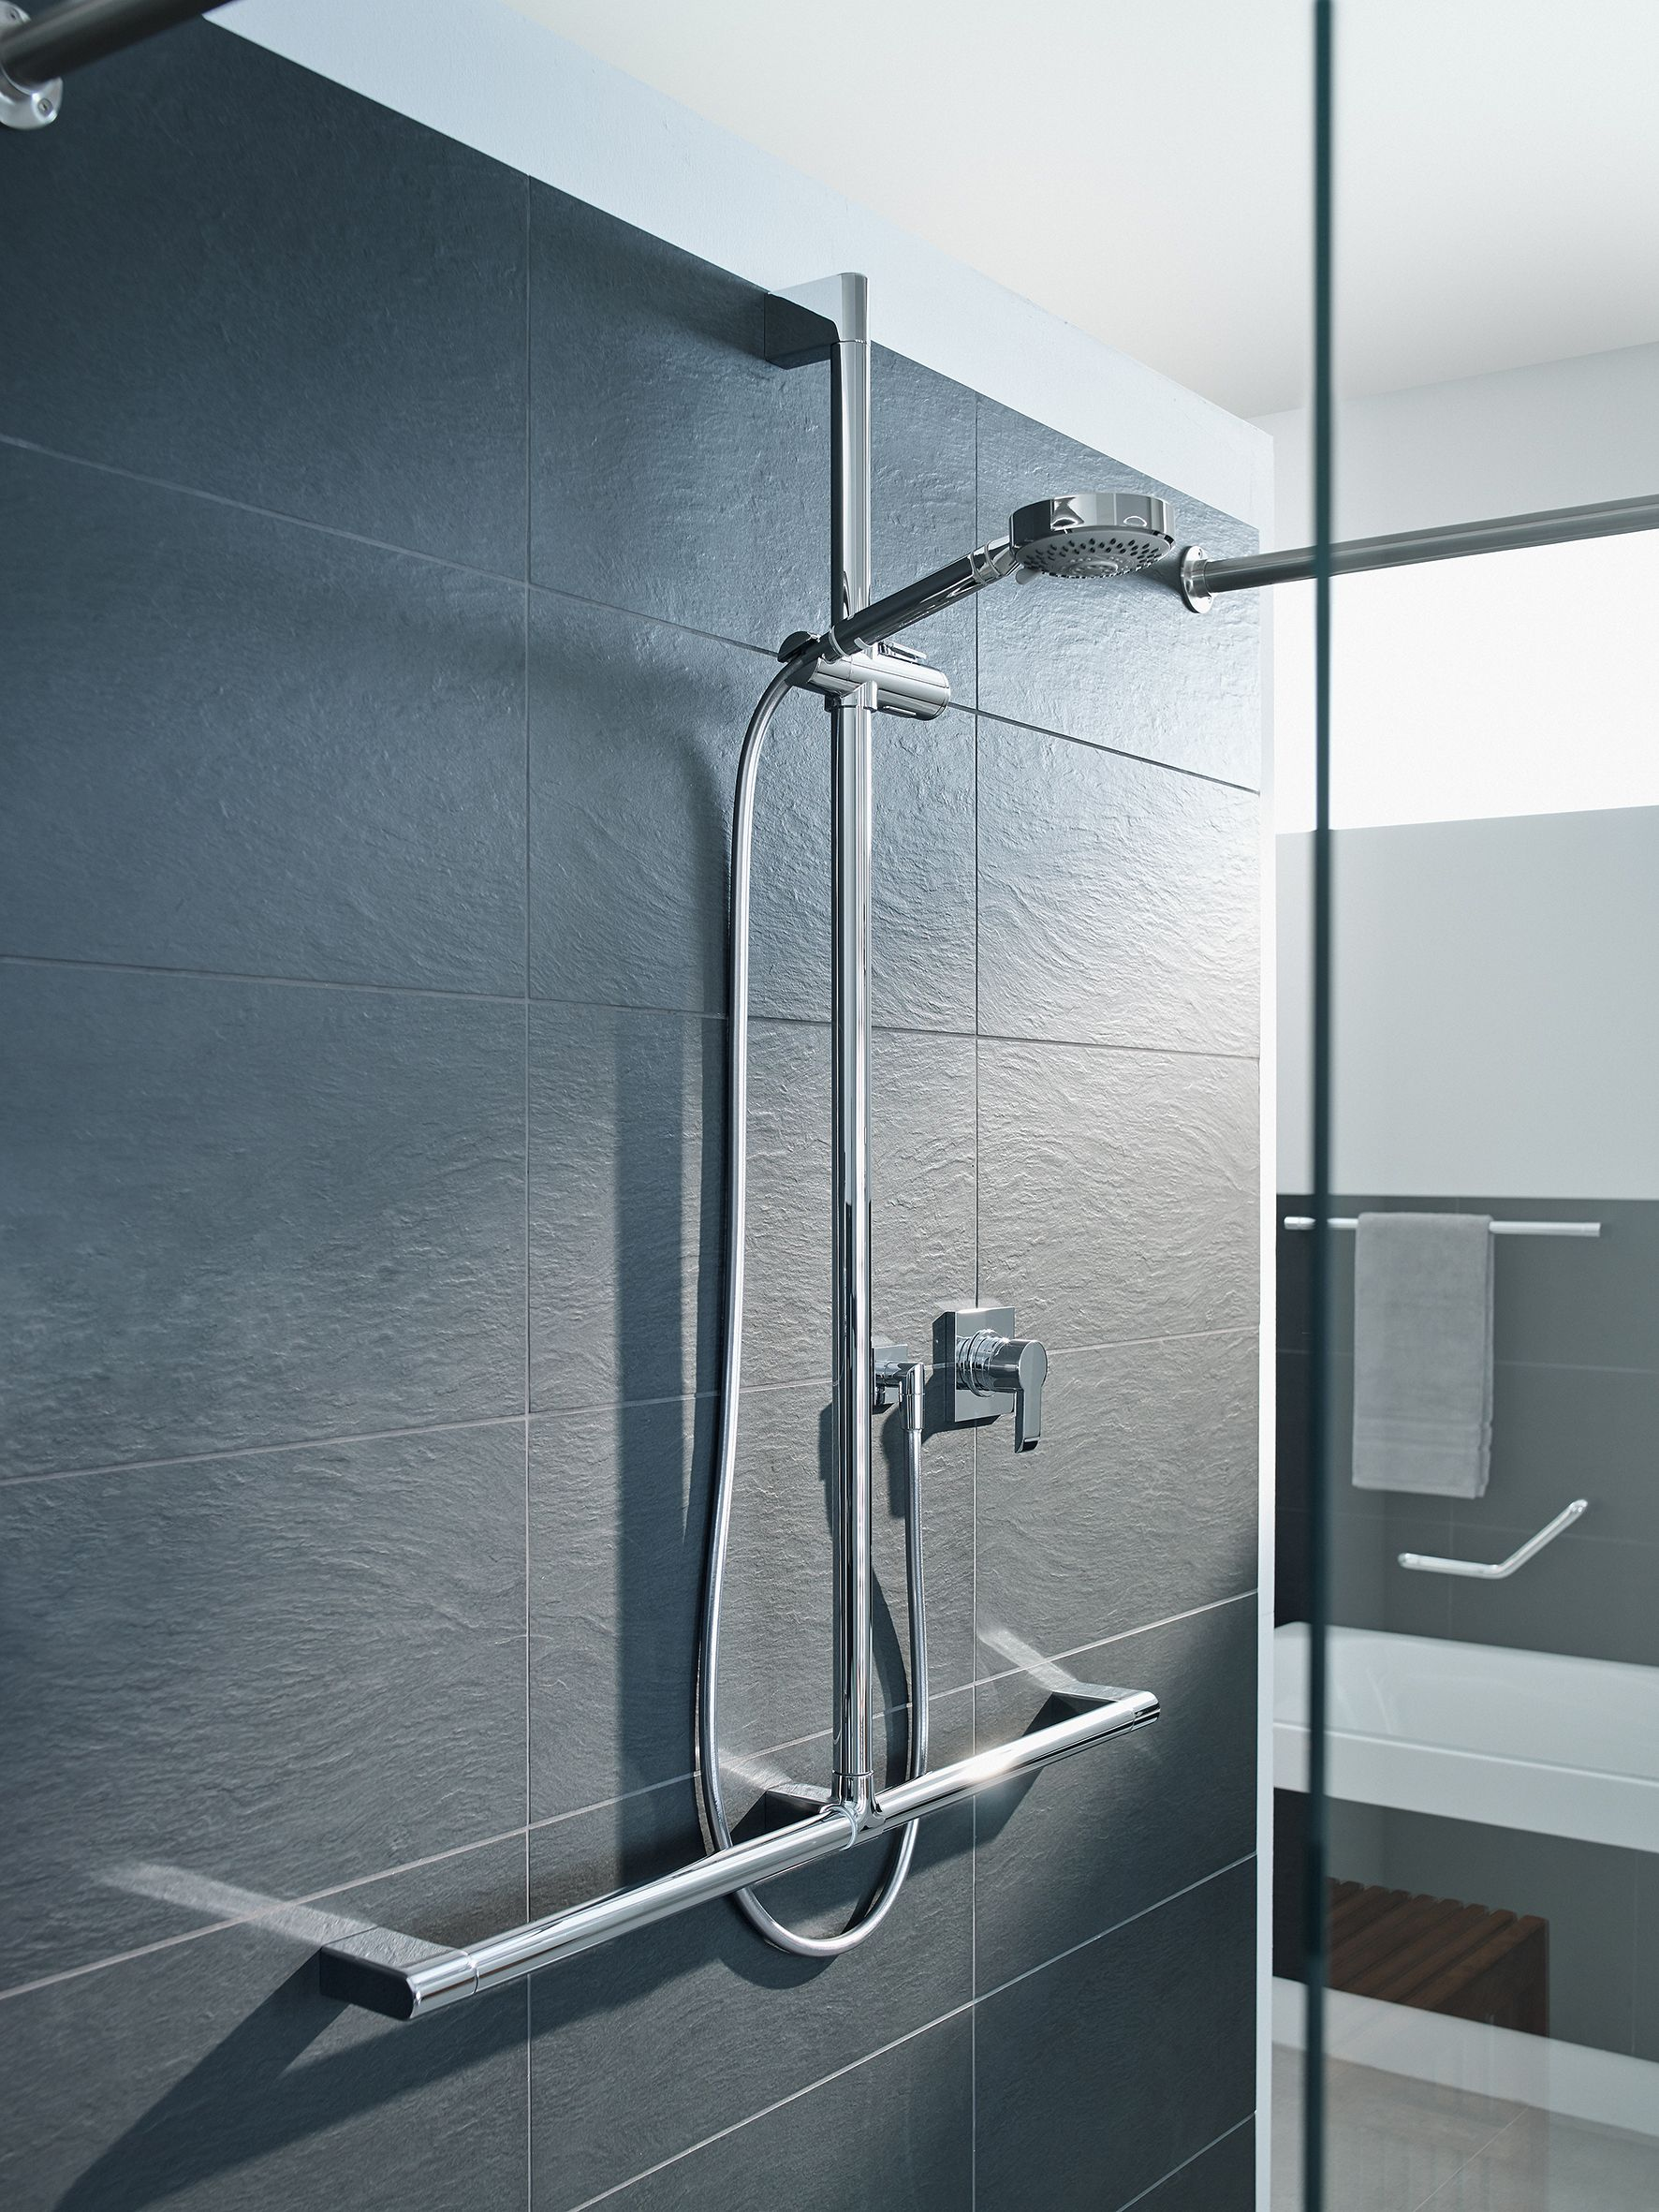 Exceptionnel Shower Slide Rail With Grab Bar   Luxury Disabled Bathrooms